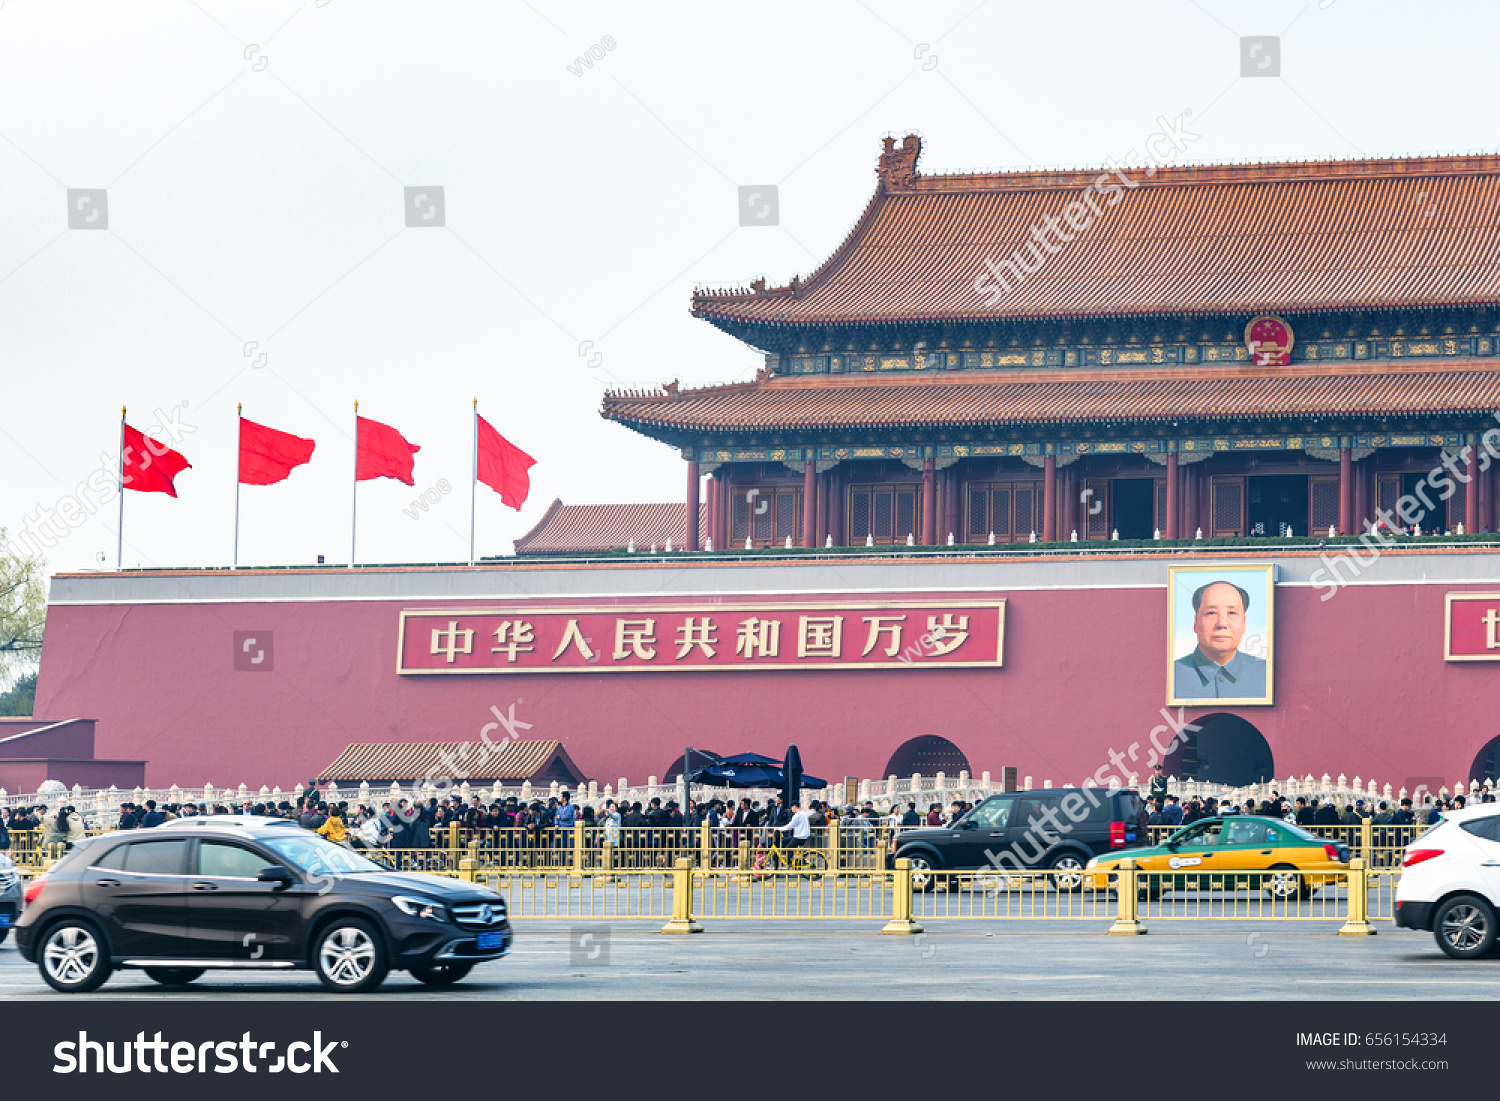 National Museum of China Běijīng, Beijing China March 19 2017 People Stock Photo 656154334 ...